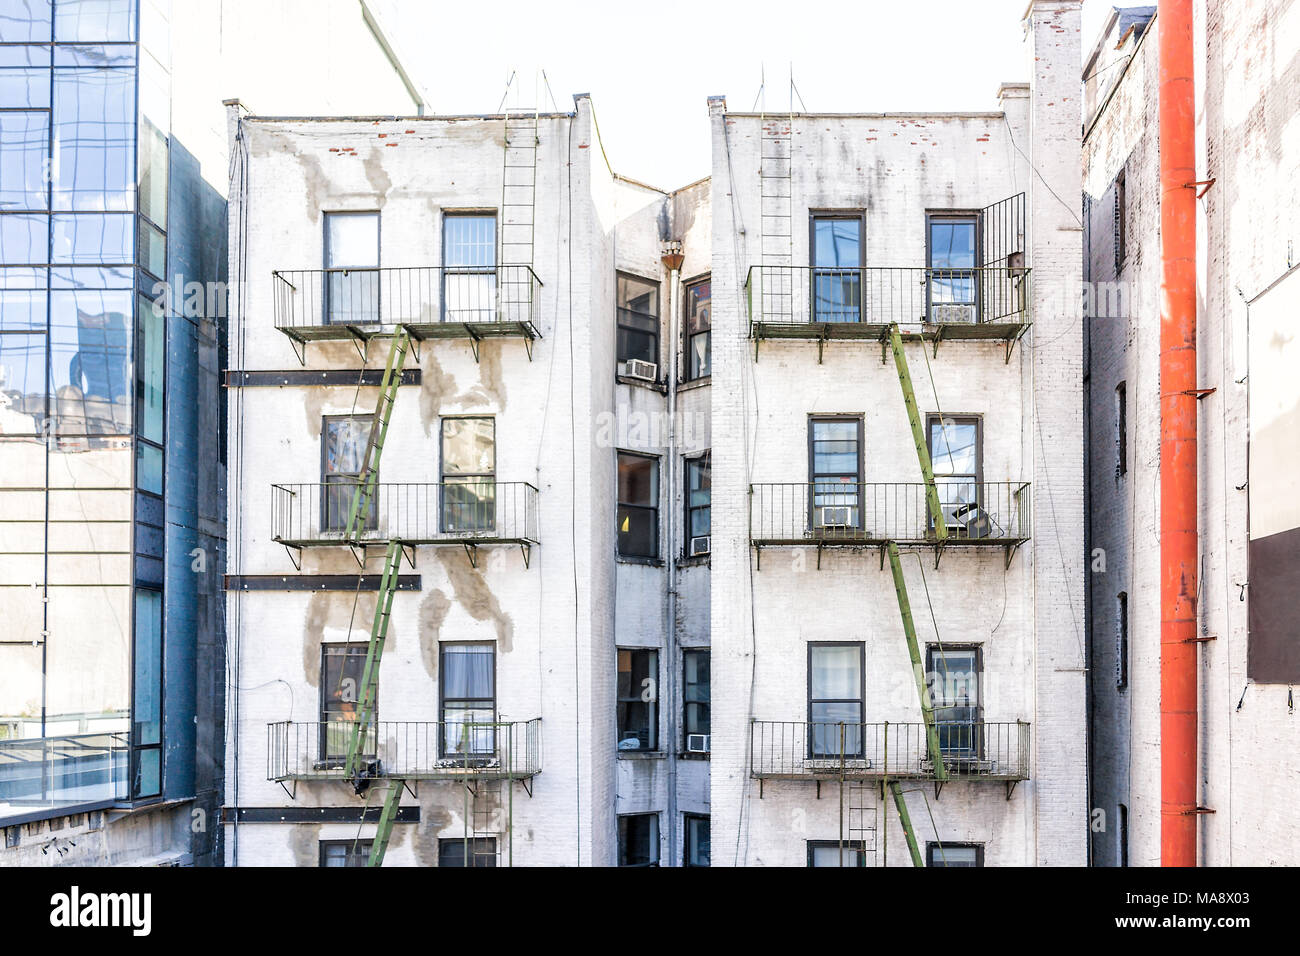 Old Apartment Condo Building Exterior Architecture In Chelsea, NYC,  Manhattan, New York City With Fire Escapes, Windows, Green Ladders